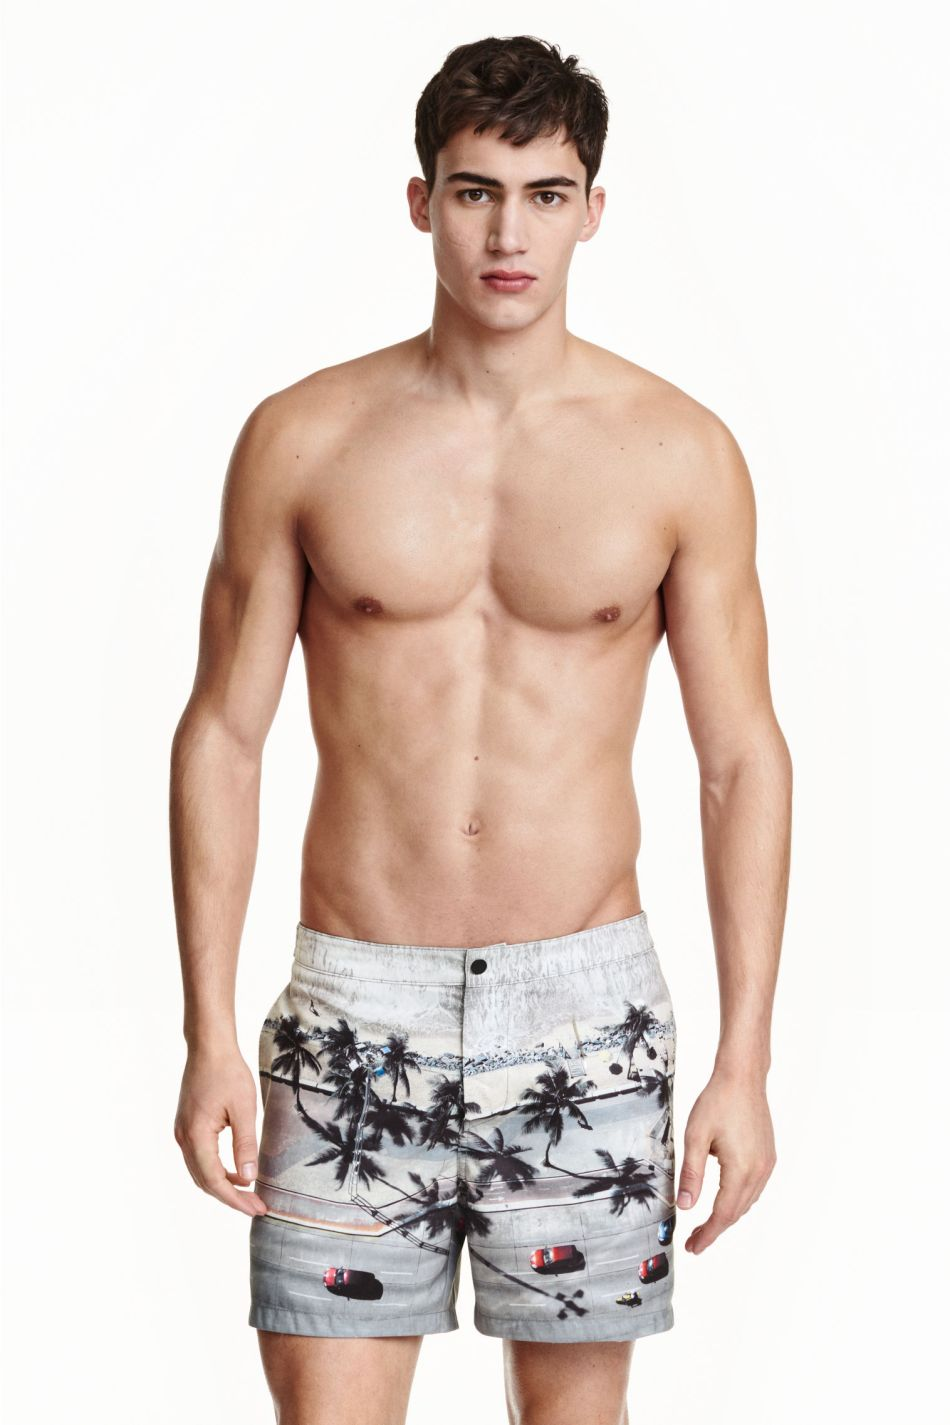 H&M Beachwear - Spring/Summer 2016